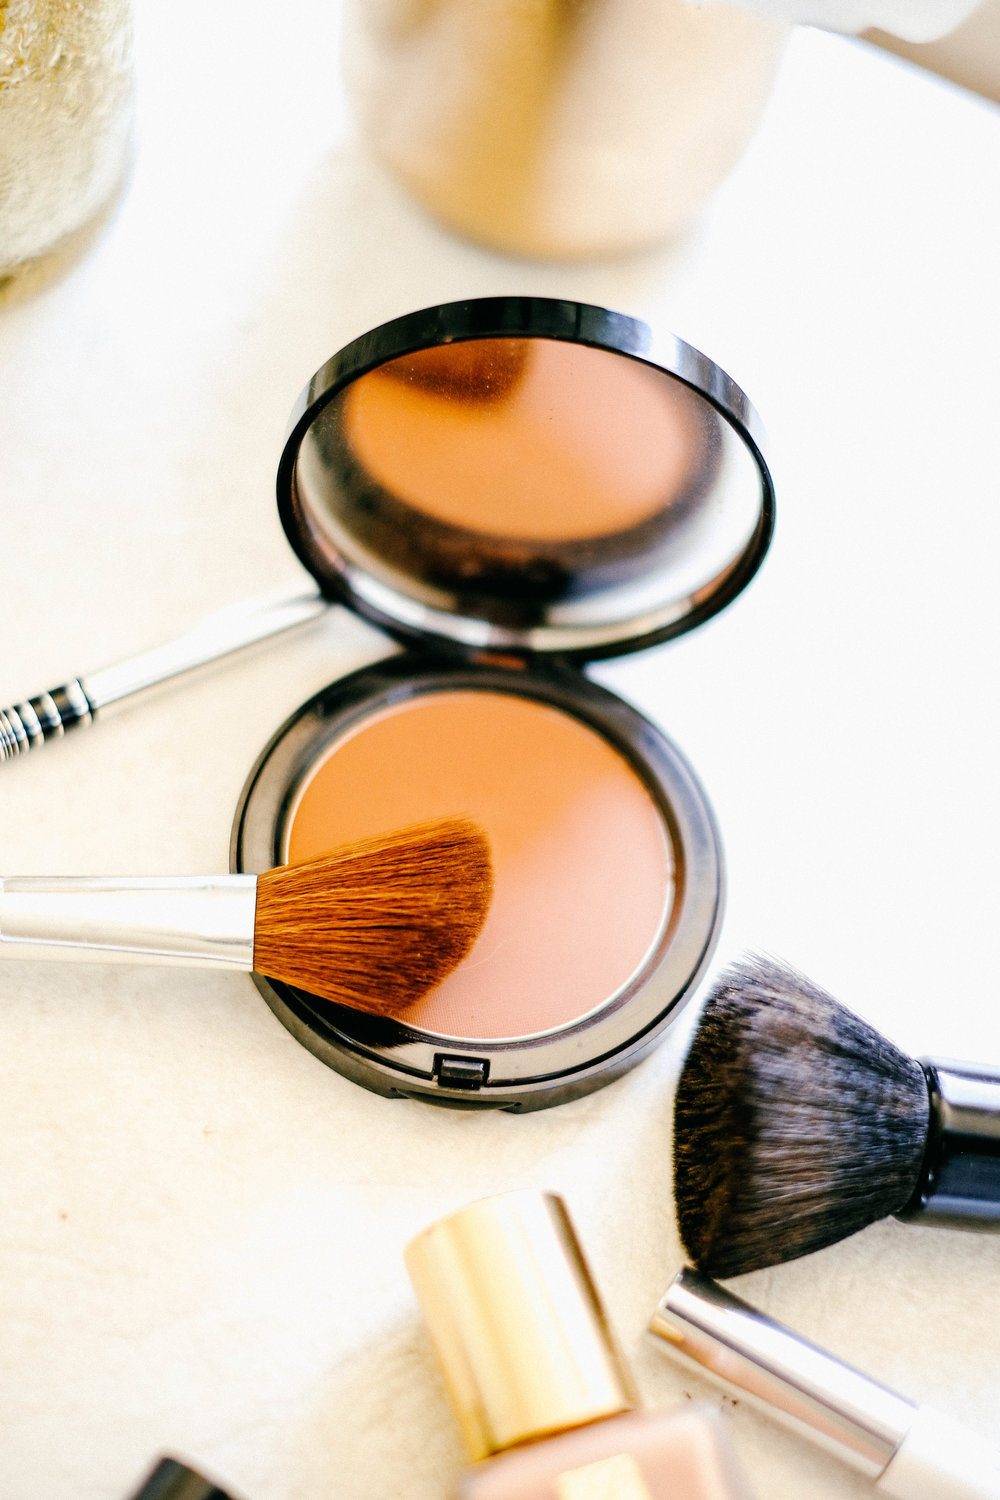 Next, I like to apply this Bobbi Brown bronzer to contour my face. I apply contour to the hollows of my cheeks, the sides of my forehead and the size of my nose. I like to contour as it just gives that extra definition and shapes the structure of my face.